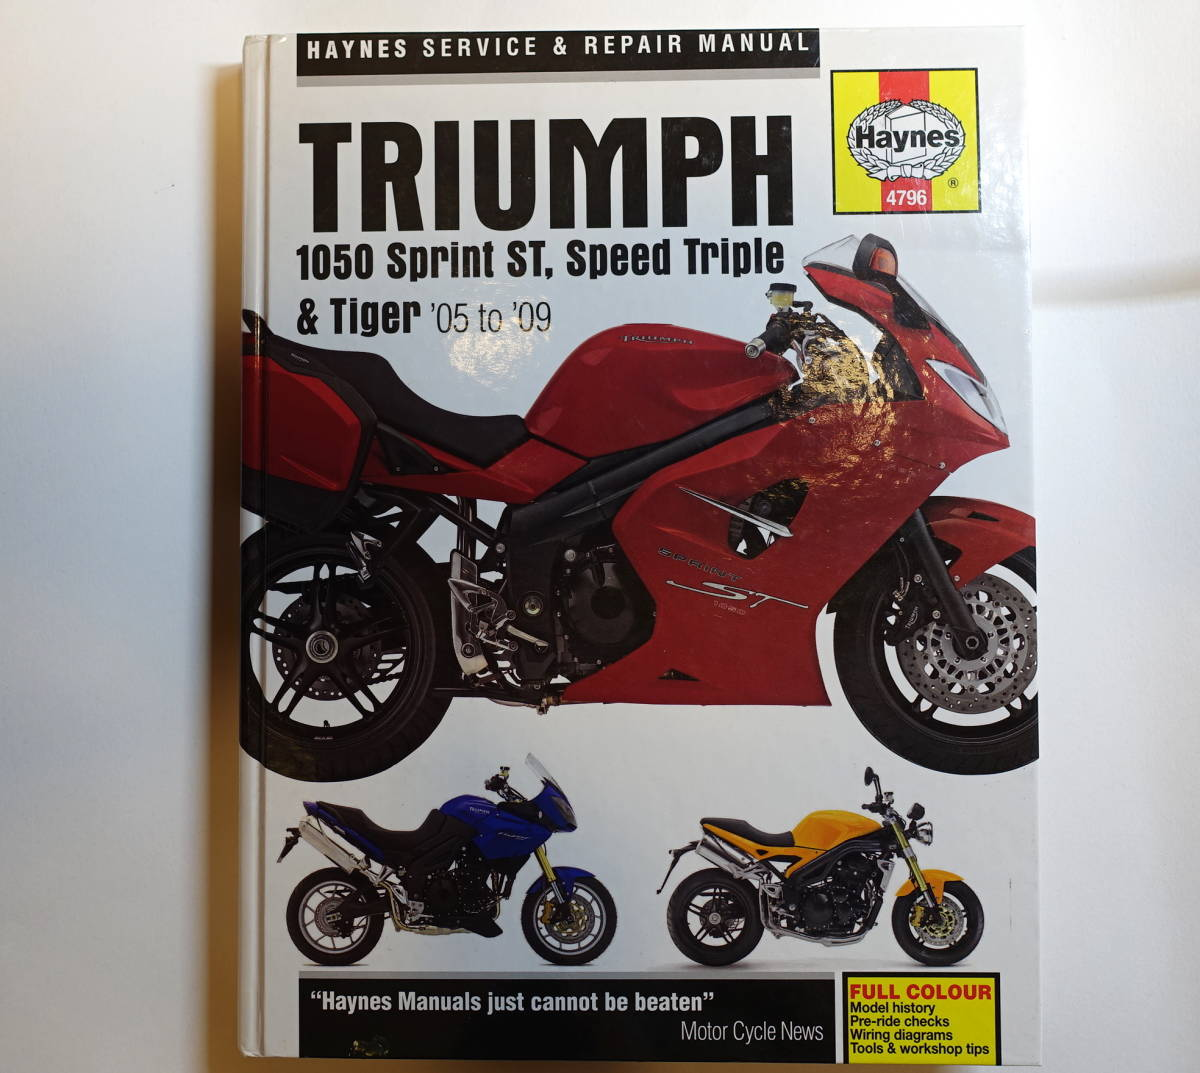 [ foreign book * English version ]Haynes partition nz service repair manual  TRIUMPH Speed Triple